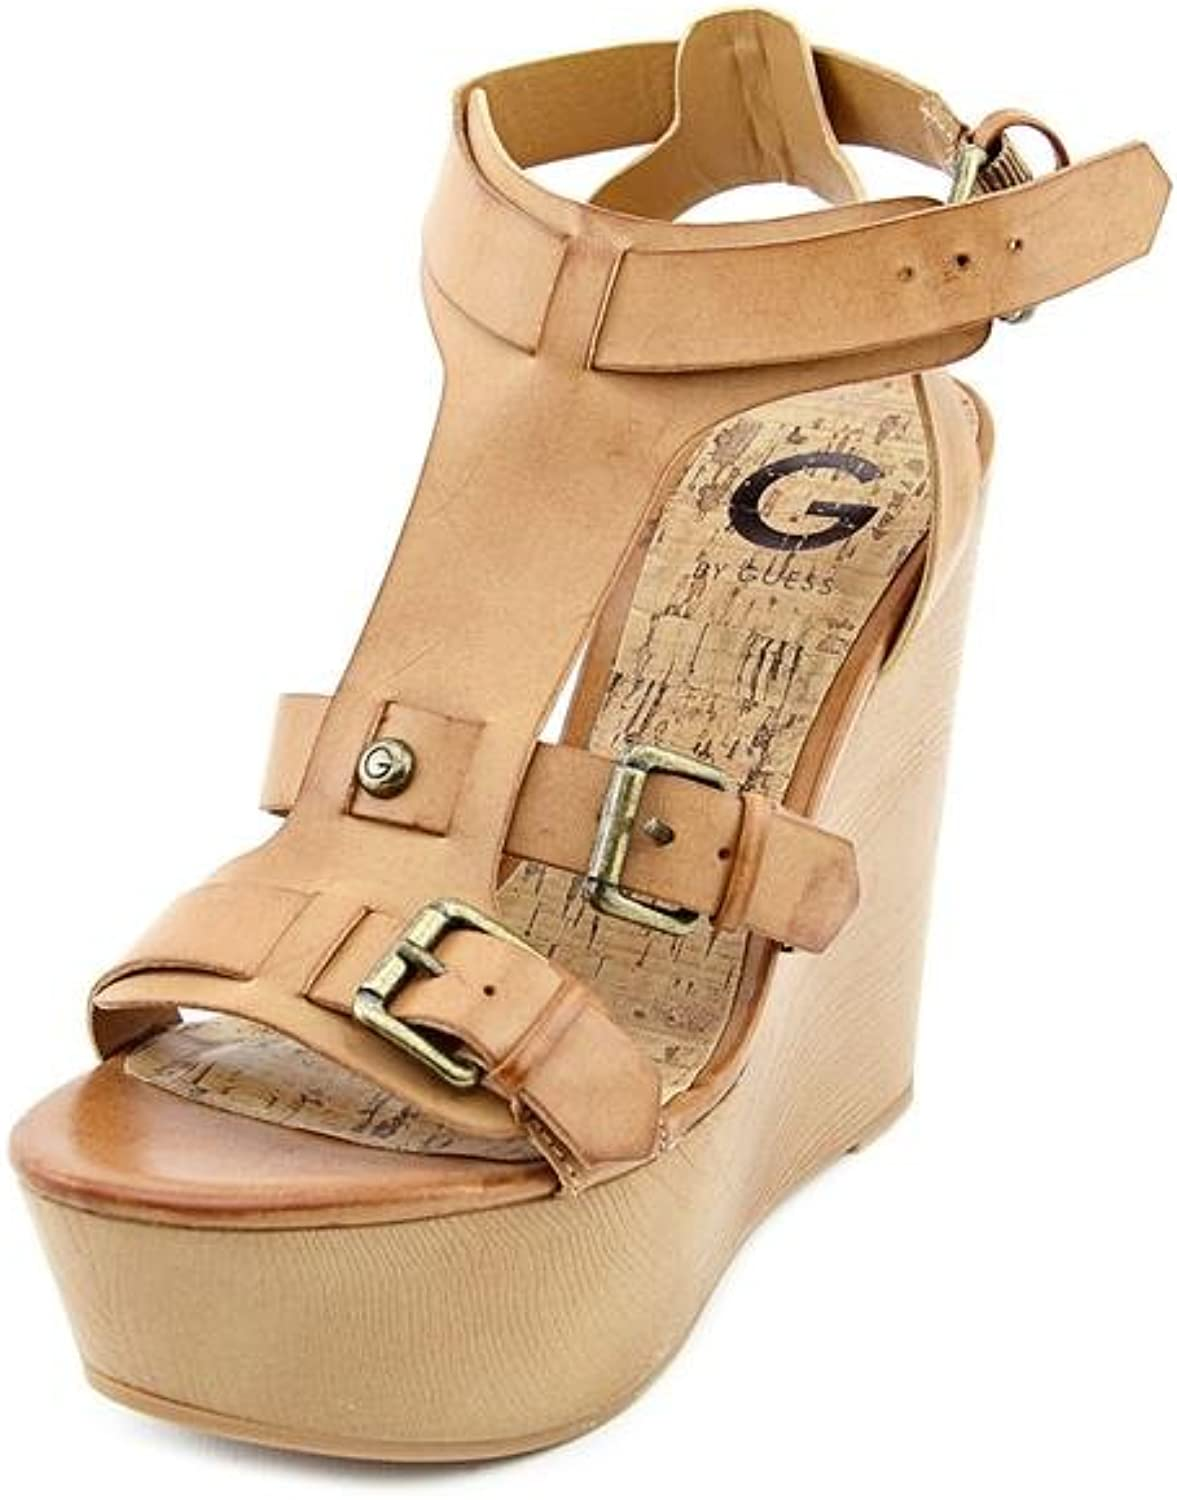 G by GUESS Women's Tazzy Platform Wedge Sandals Natural 8.5M